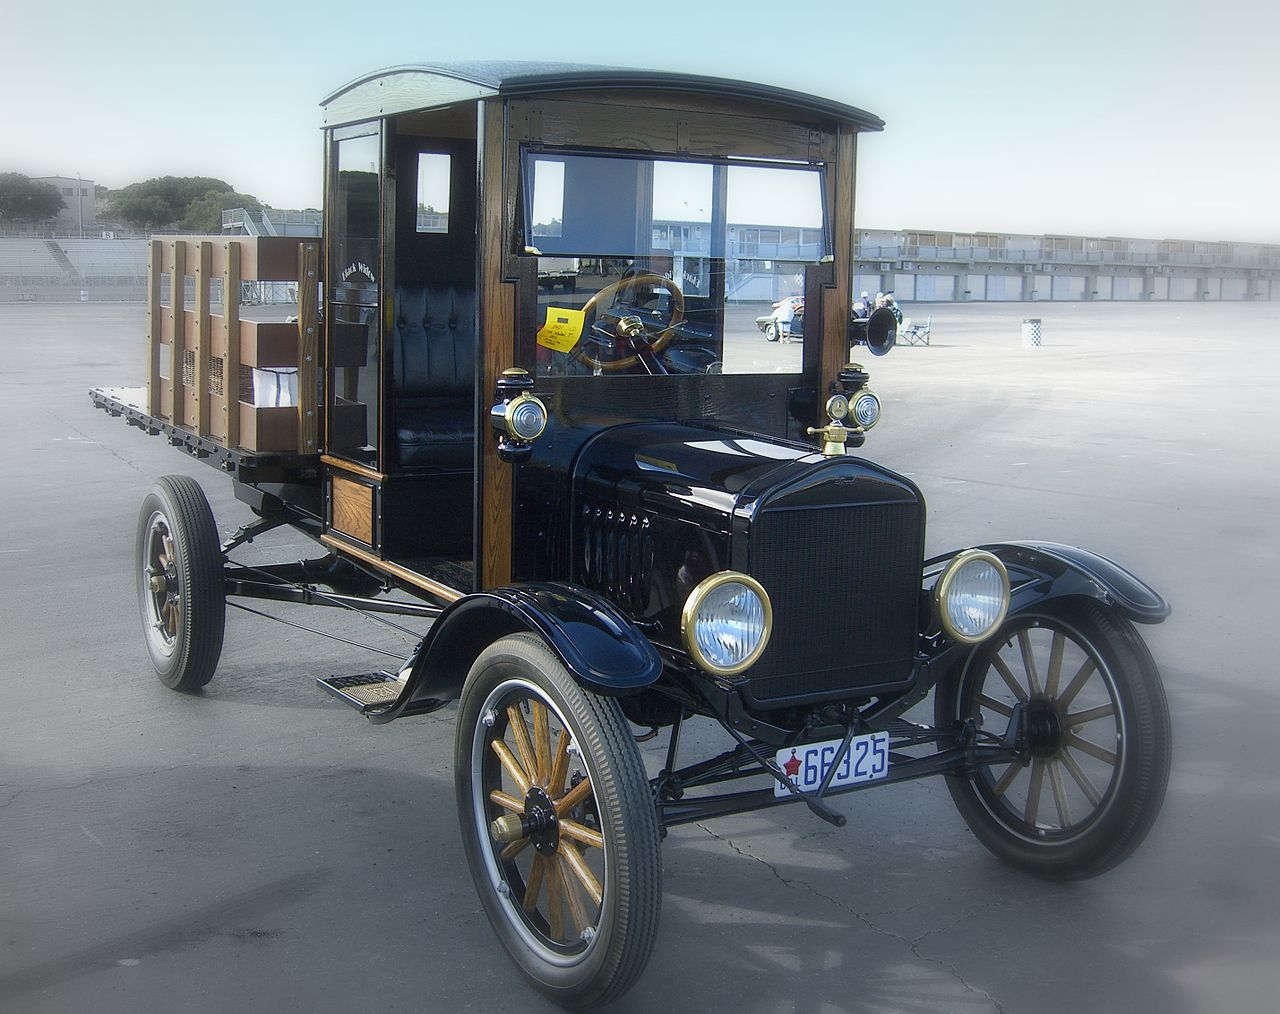 ford model t The model t was an automobile built by the ford motor company from 1908 until 1927 conceived by henry ford as practical, affordable transportation for the common man, it quickly became prized for .